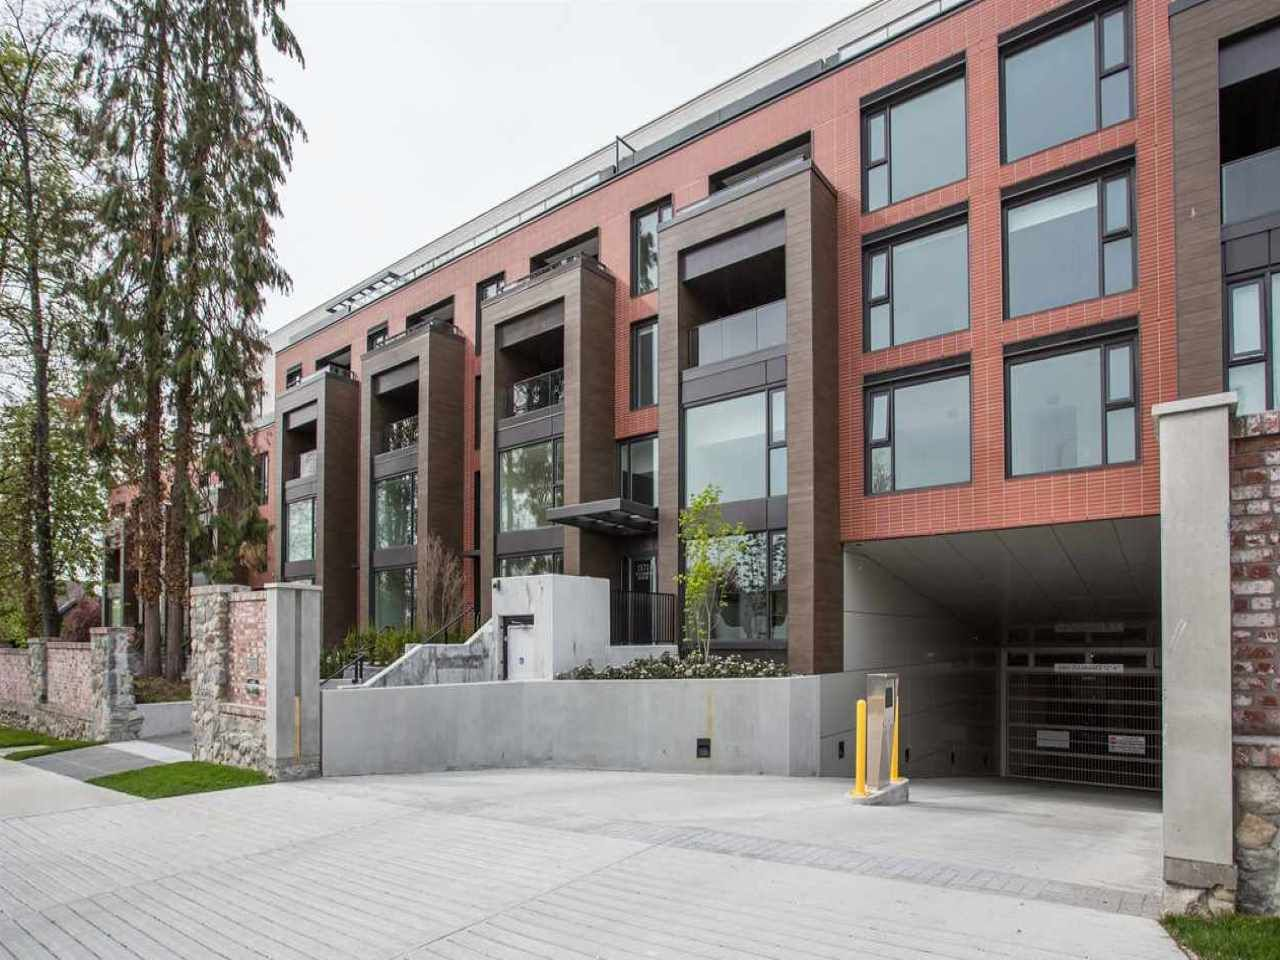 """Main Photo: 204 1571 W 57TH Avenue in Vancouver: South Granville Condo for sale in """"SHANNON WALL CENTRE - WILSHIRE HOUSE"""" (Vancouver West)  : MLS®# R2507482"""